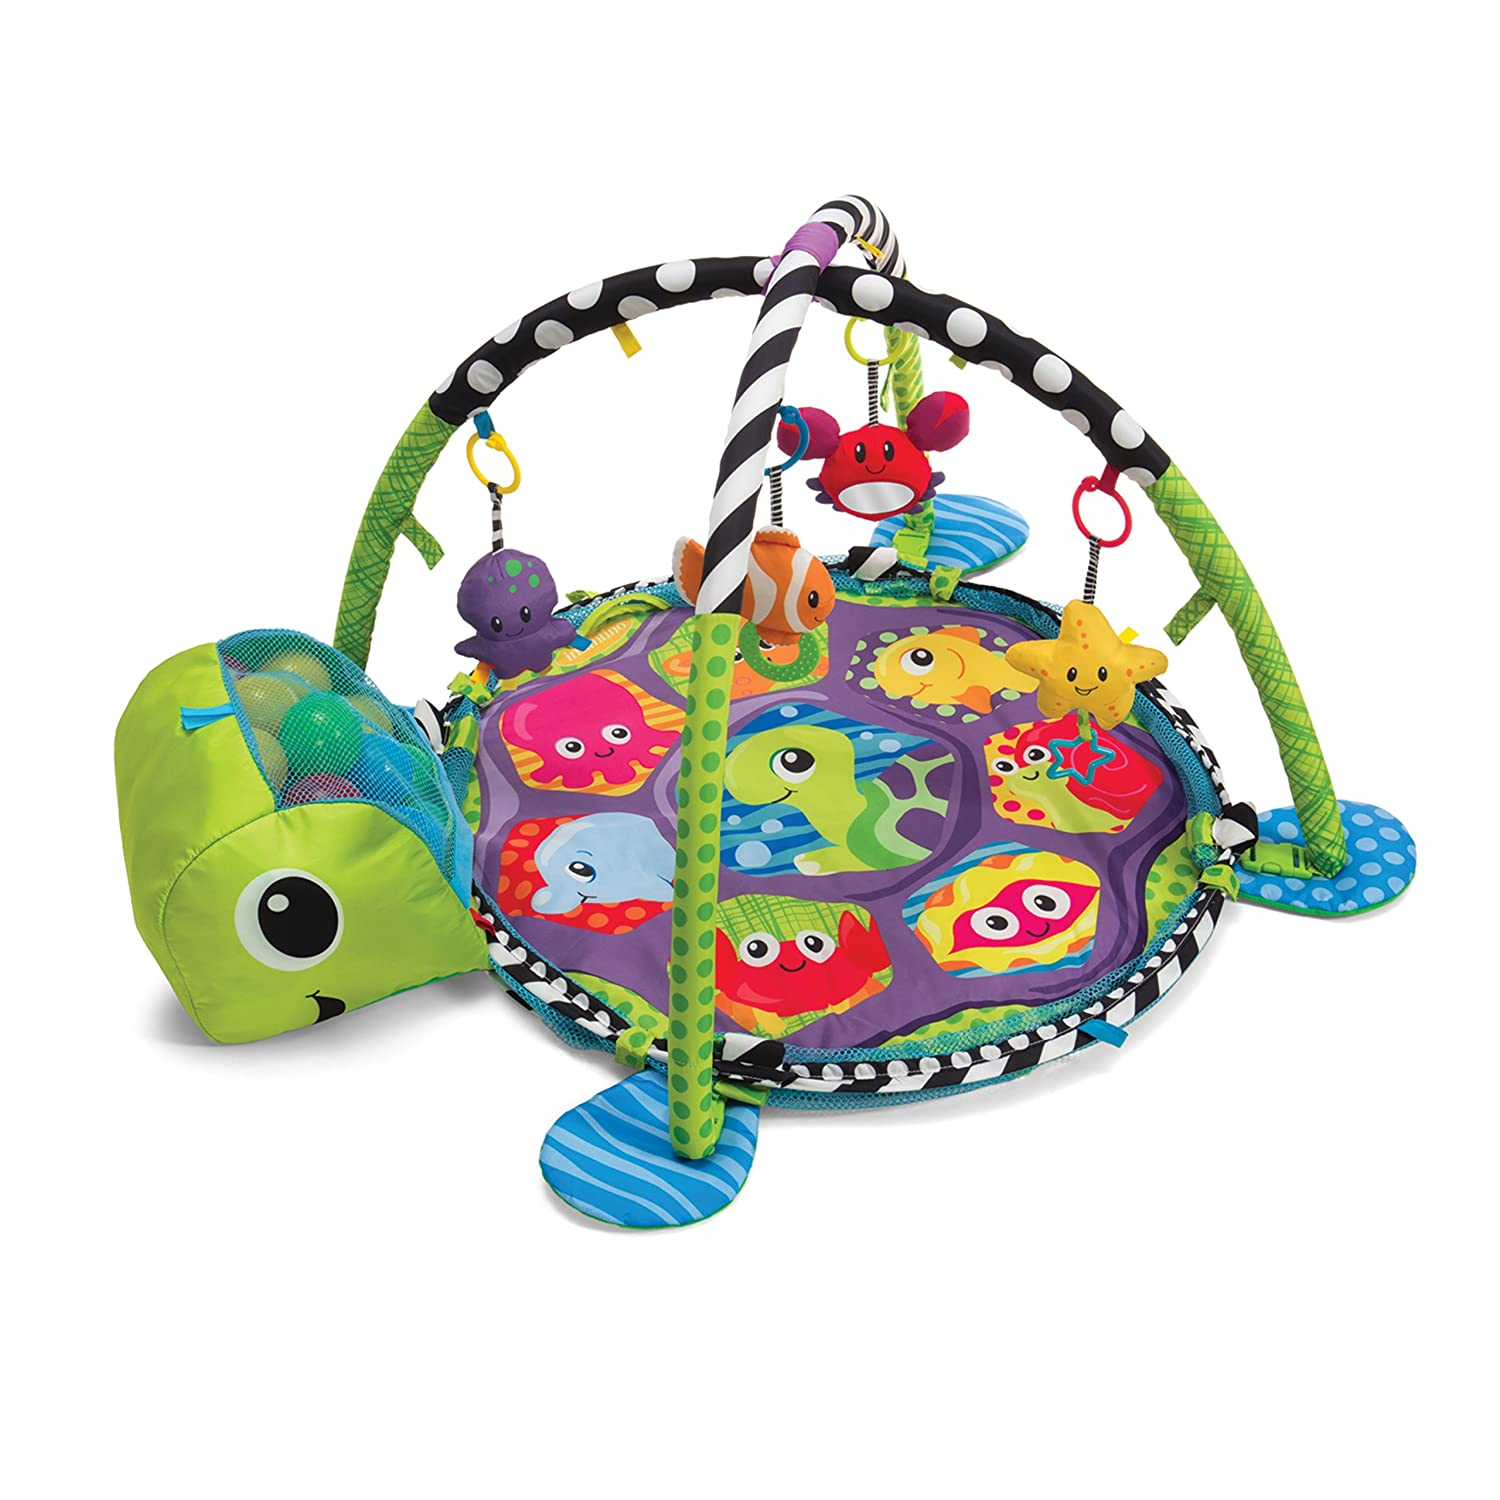 age appropriate toy for a 6 month old